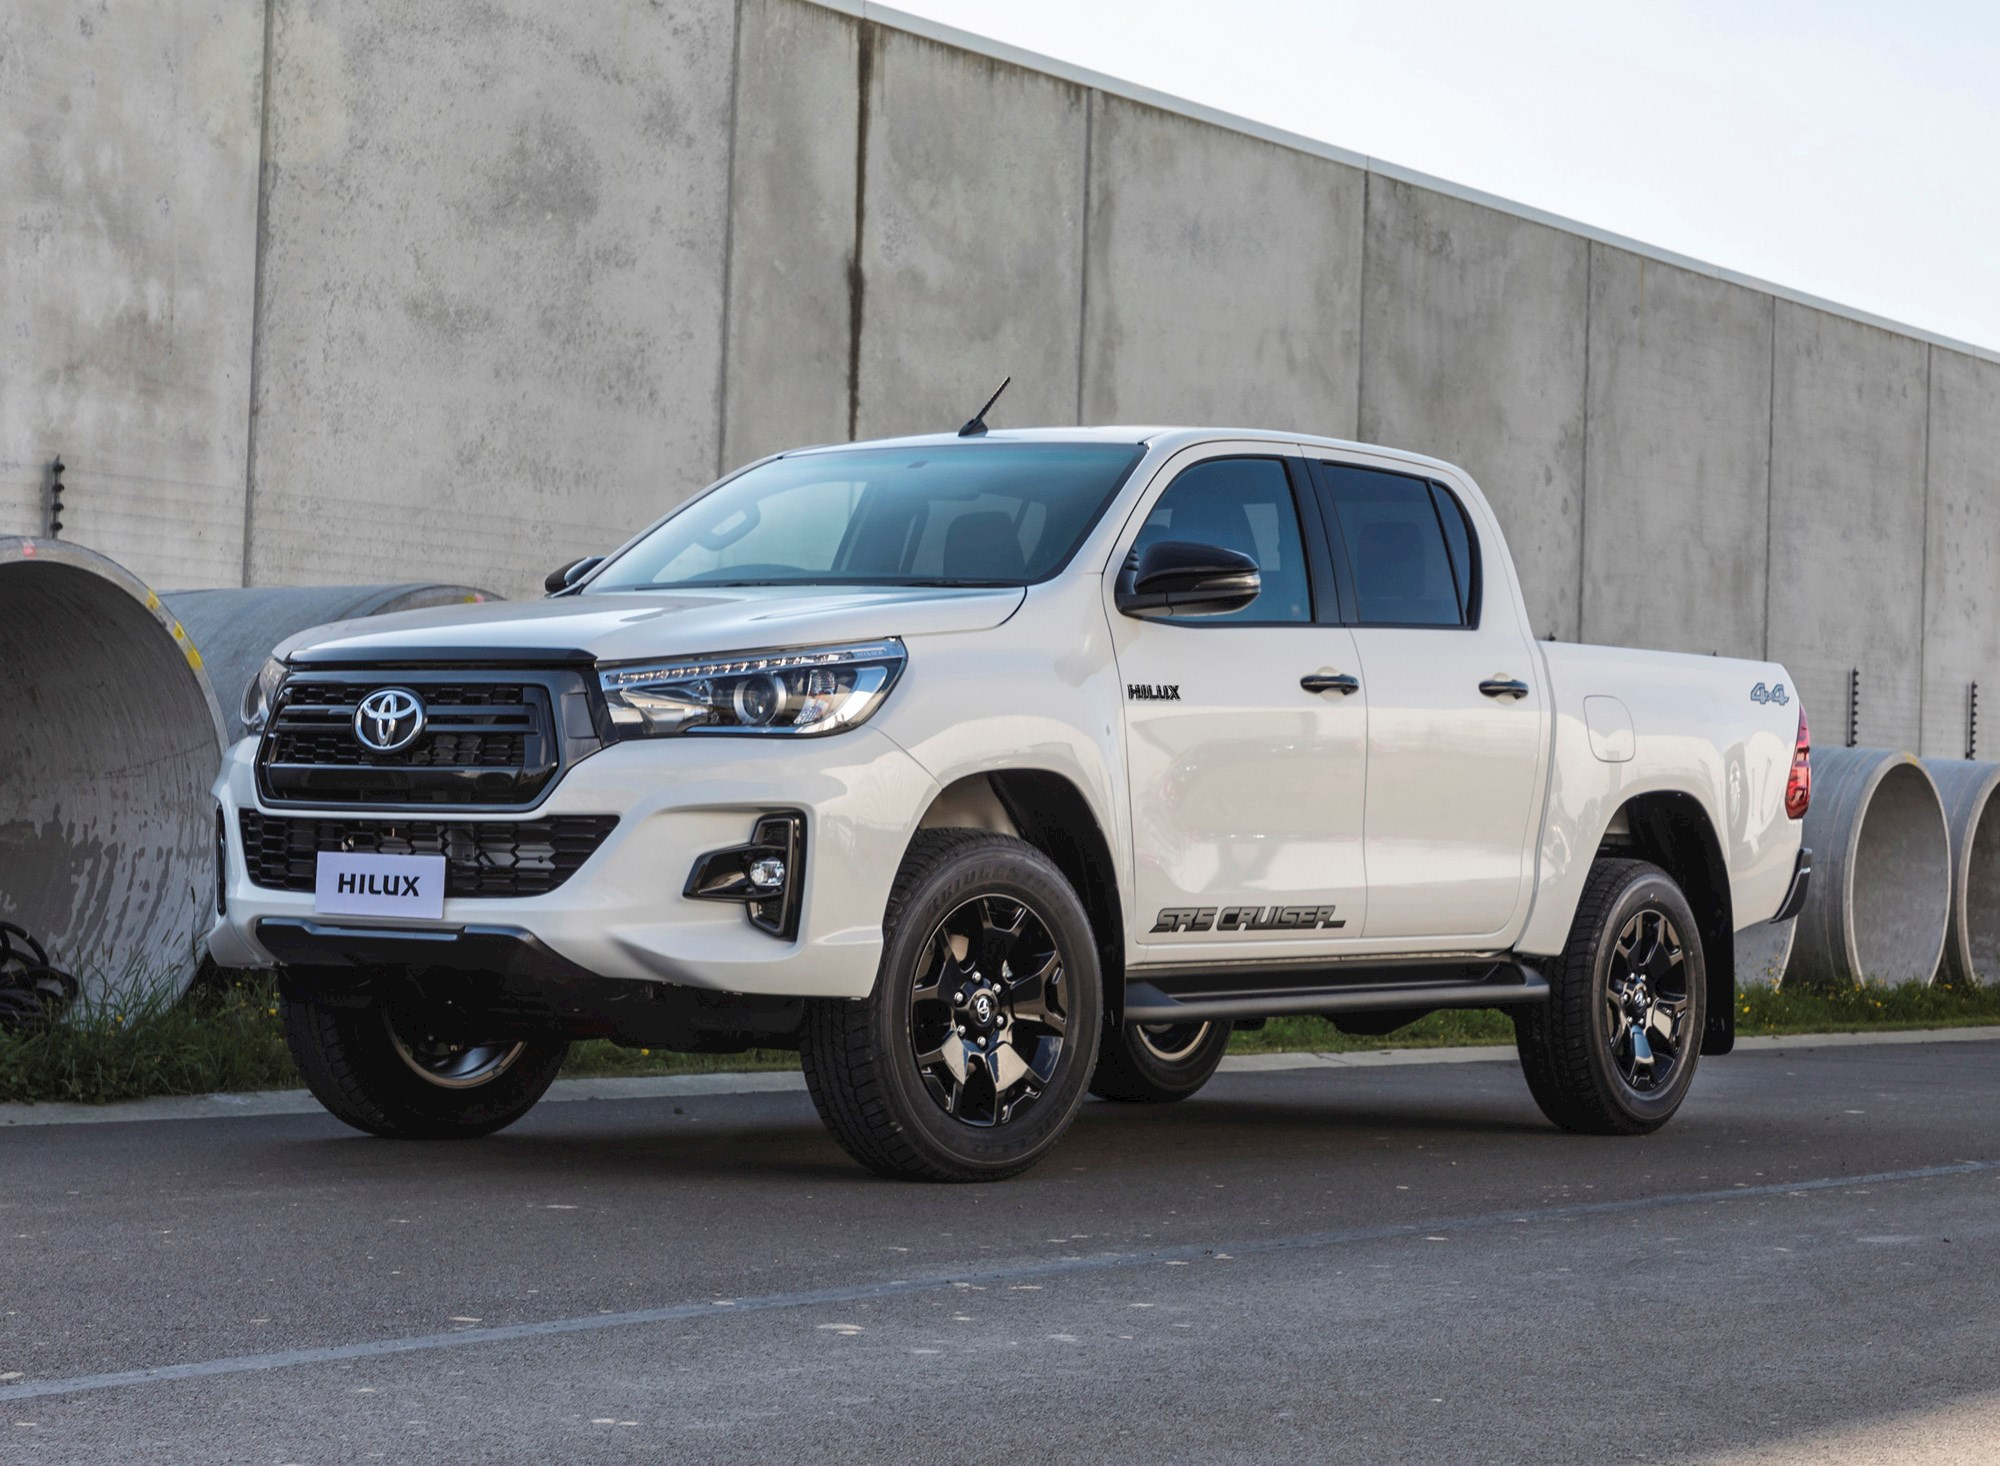 Toyota Double Cab >> Toyota introduce range-topping Hilux SR5 Crusier - Reviews - Driven